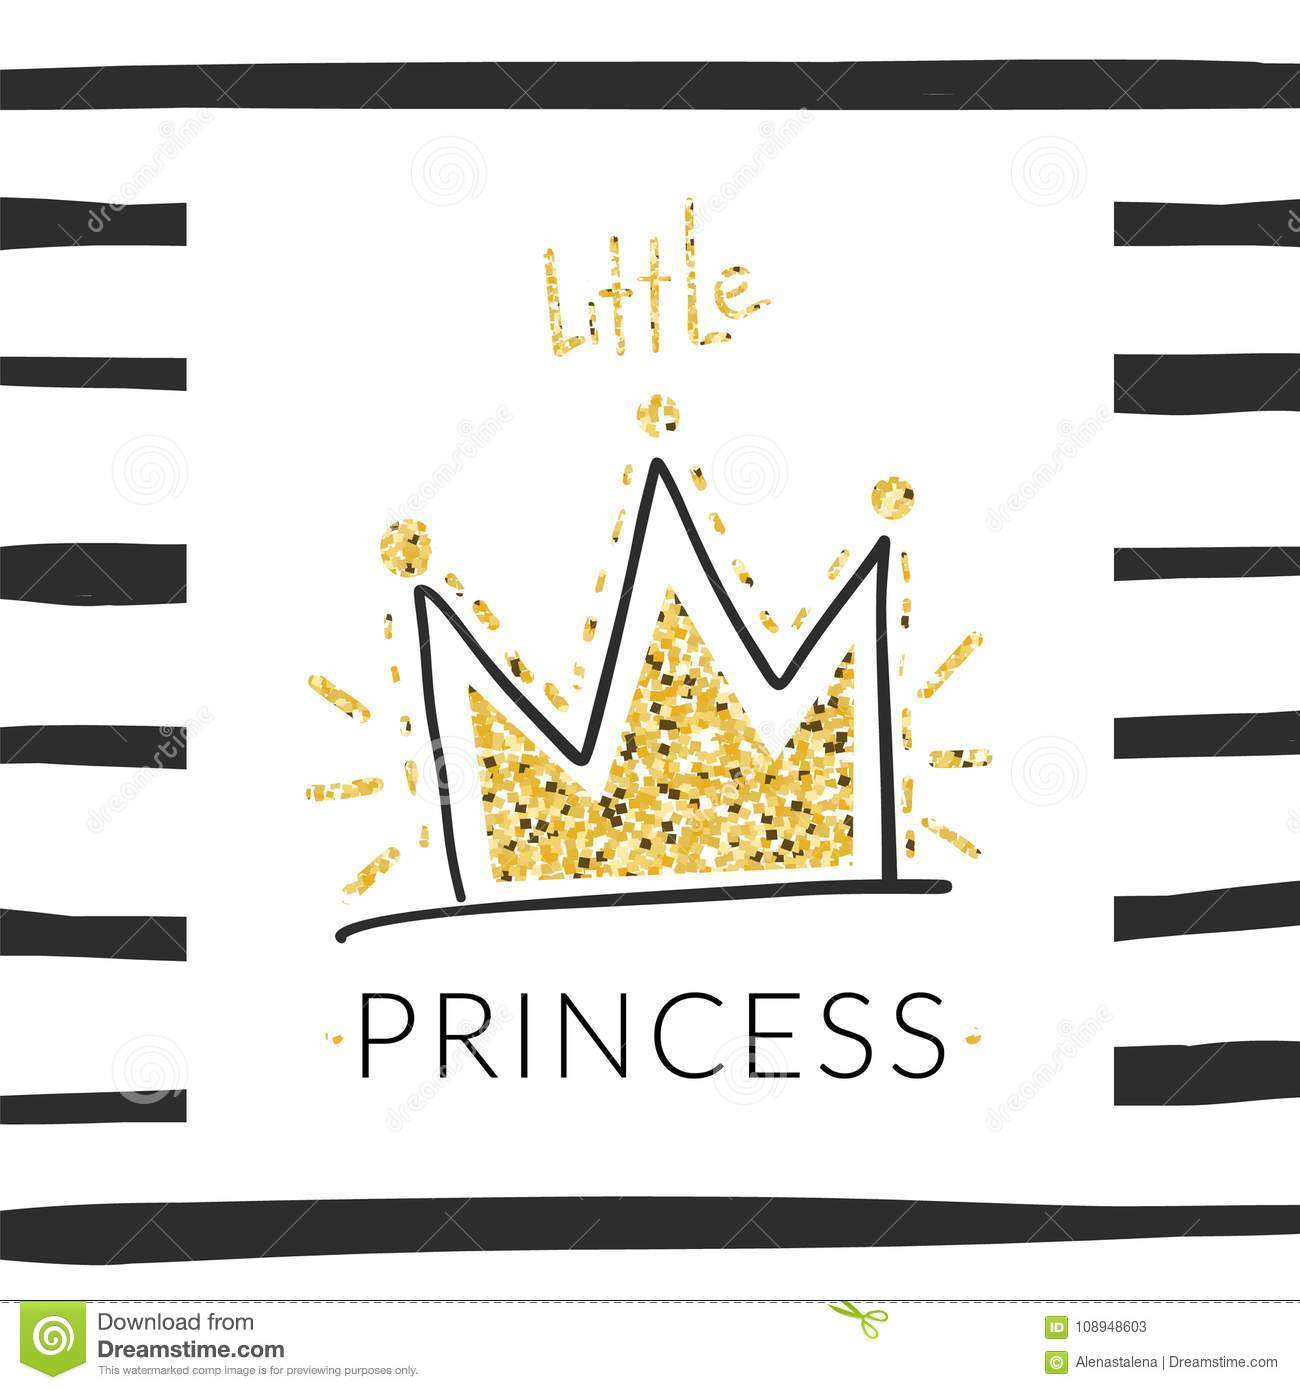 Princess t-shirt background with glitter crown in girlish style for modern apparel. Vector print design